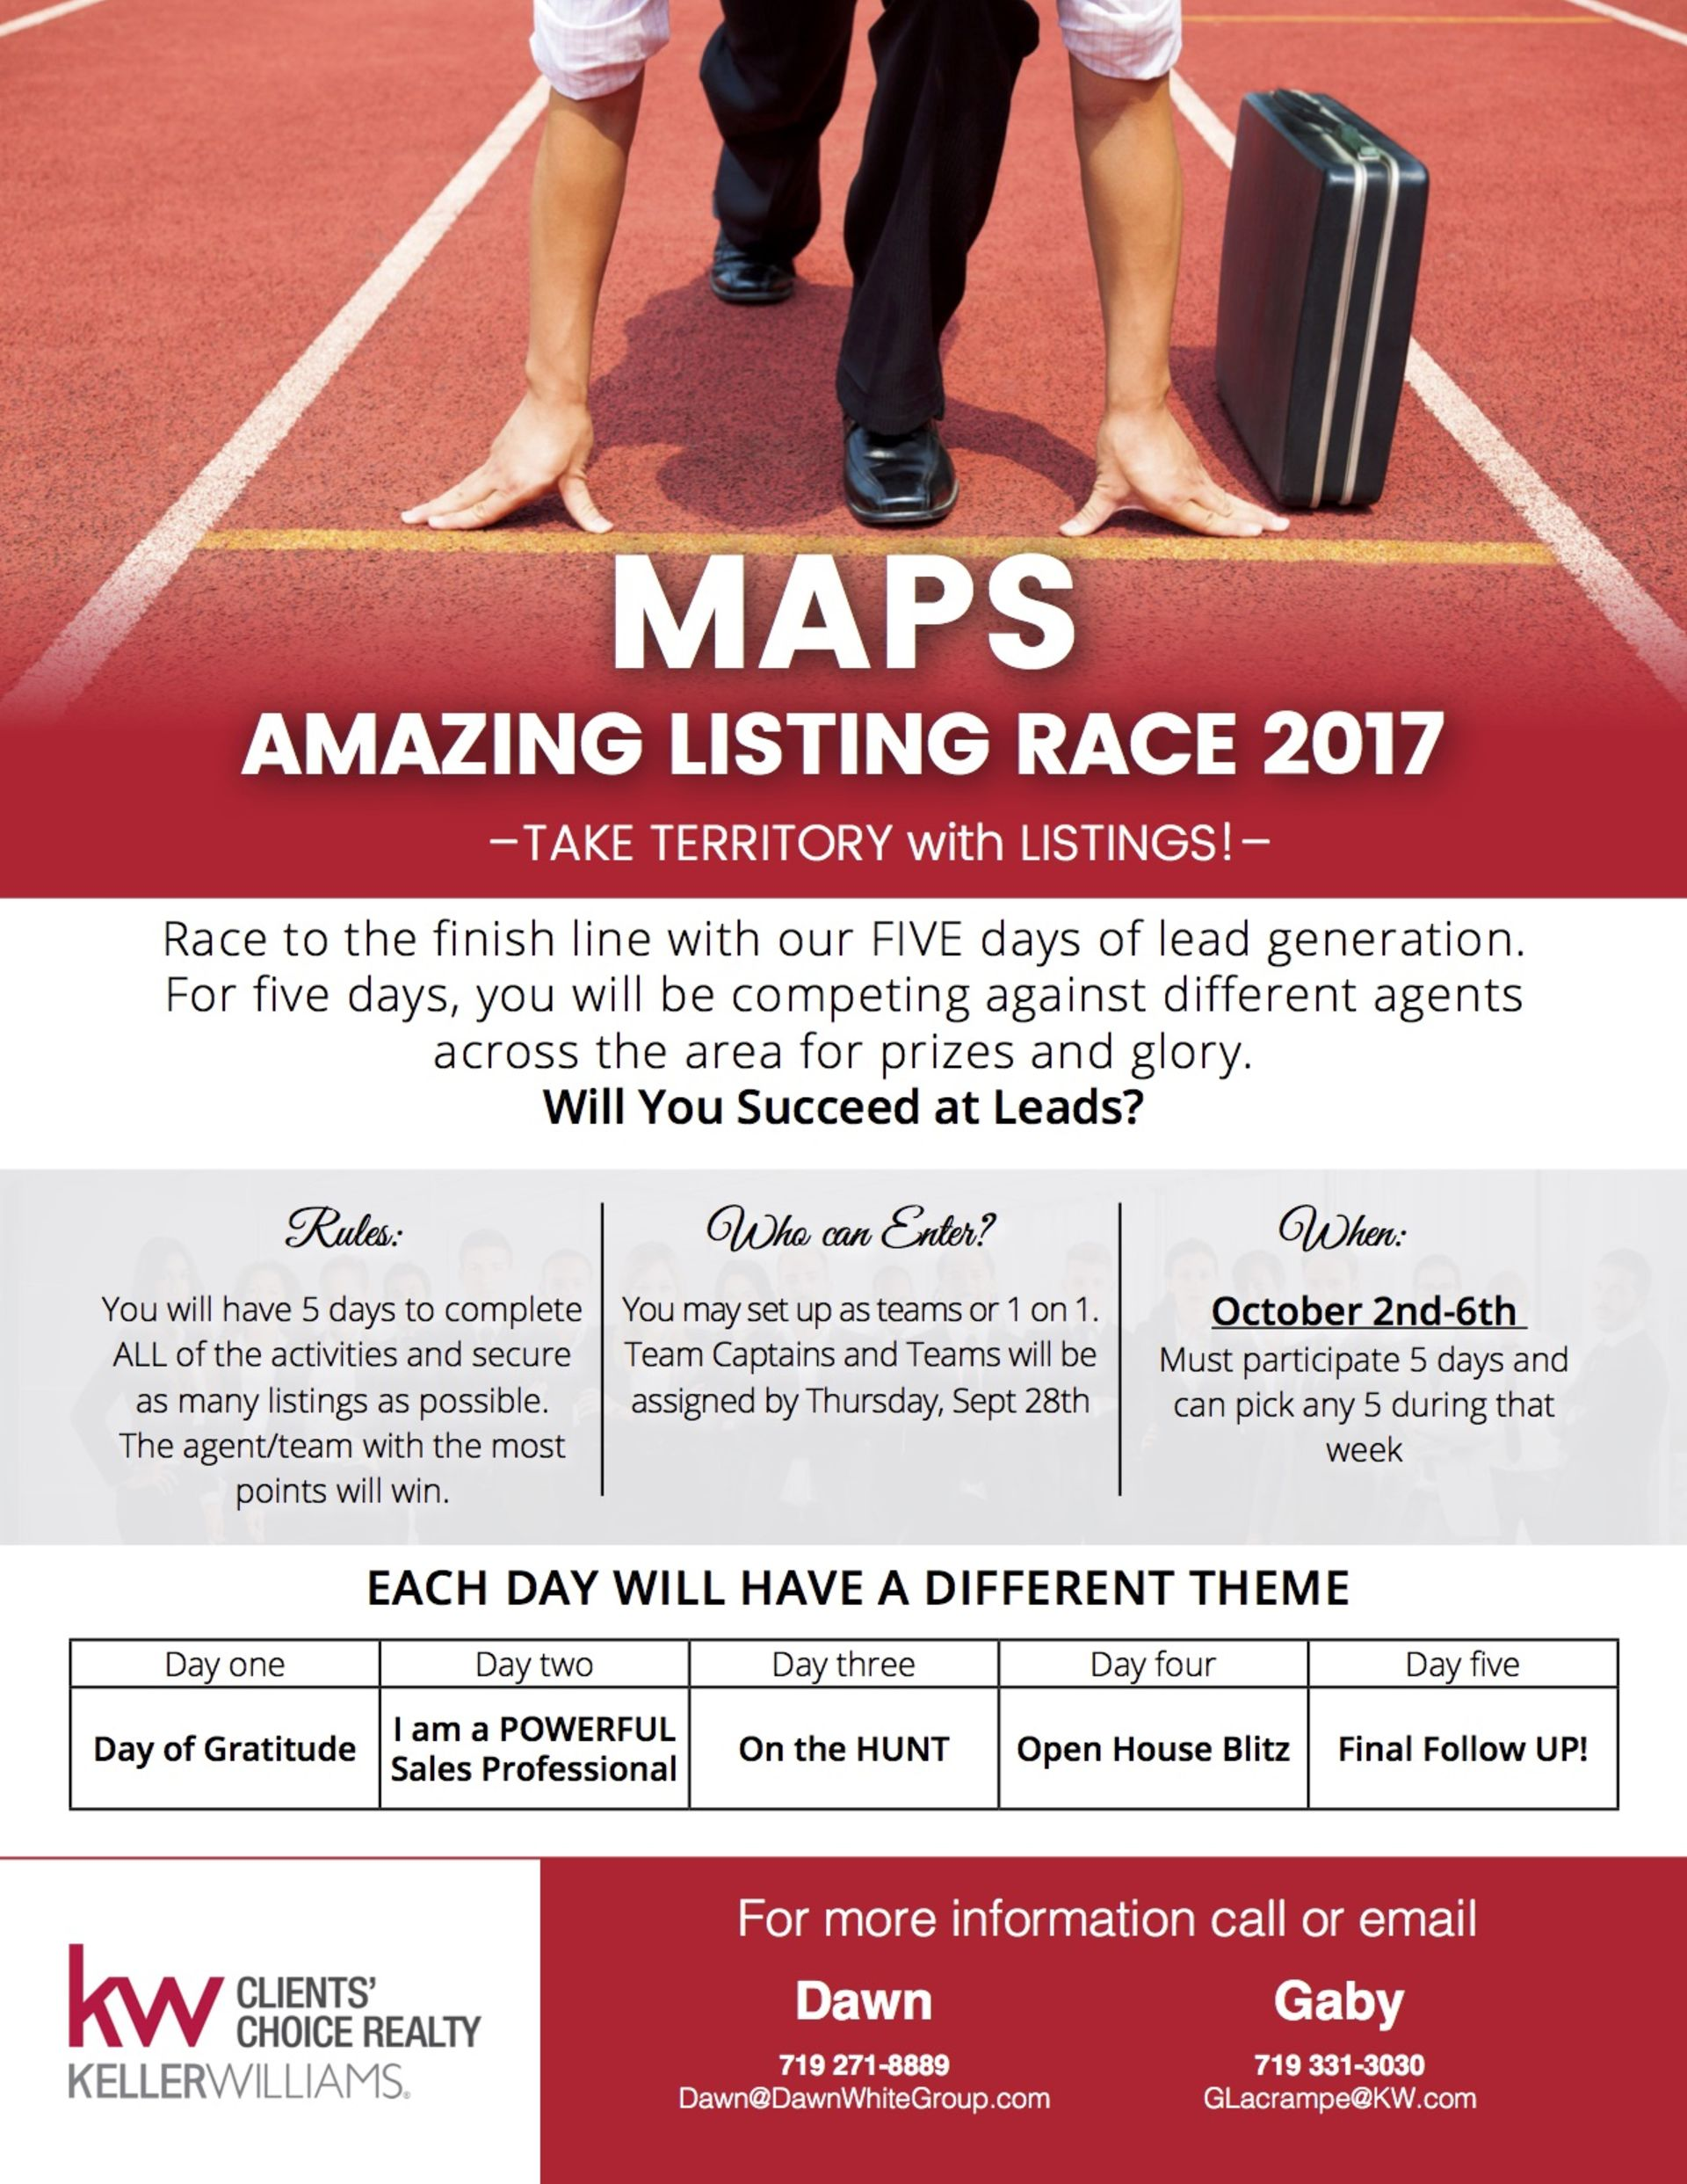 Amazing Listing Race – Are you interested in participating?